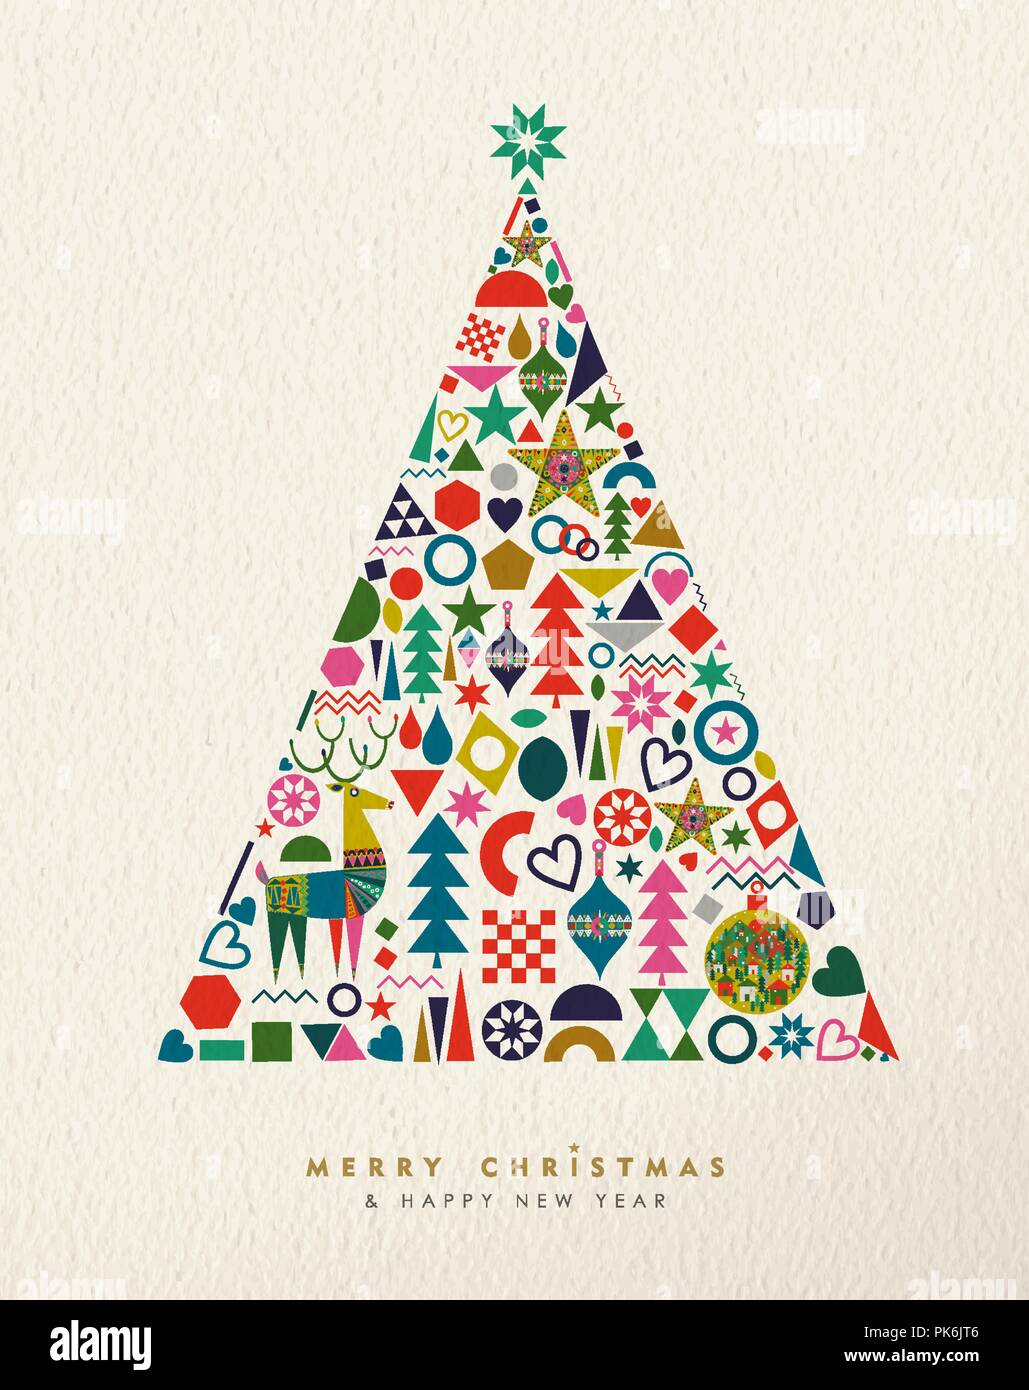 merry christmas and happy new year card illustration of vintage geometric icons in winter pine tree shape holiday scandinavian design eps10 vector